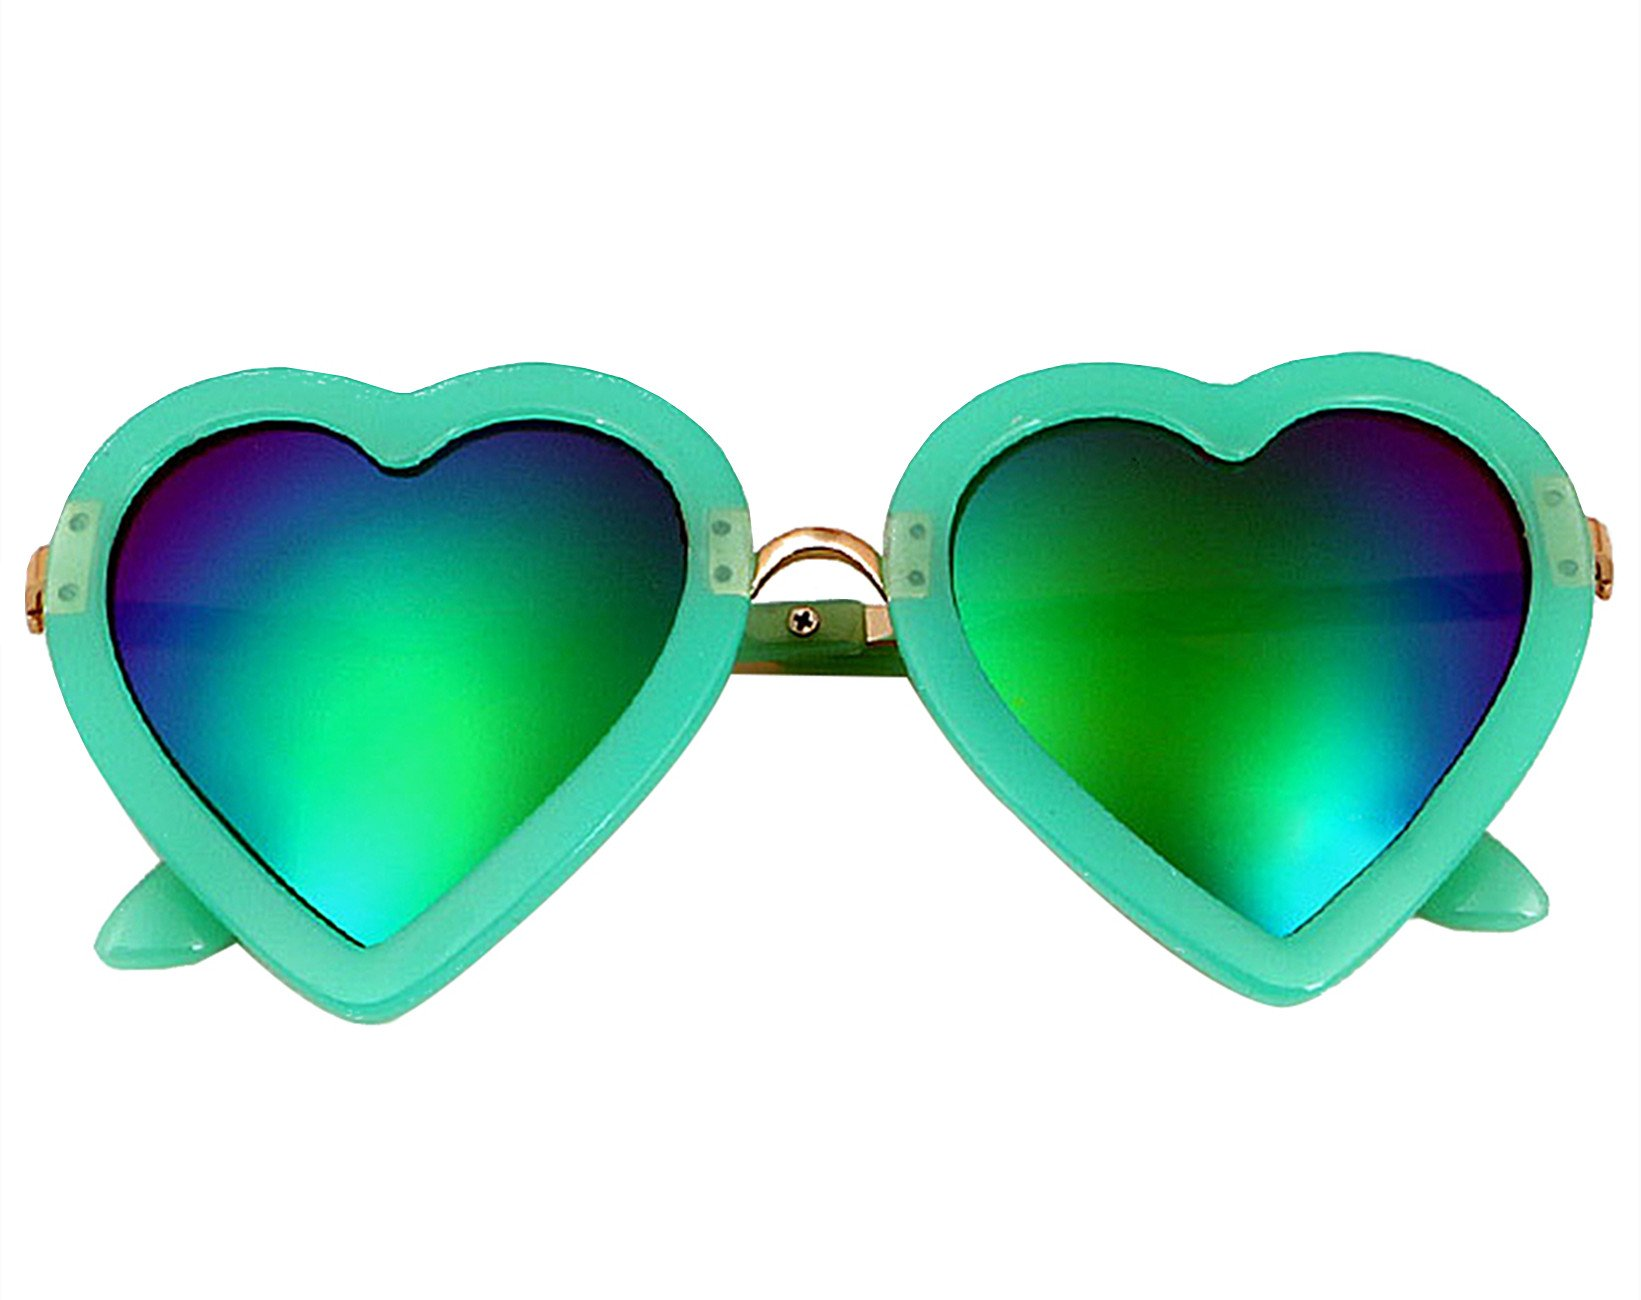 Baonmy Toddler Girls Sunglasses,100% UV Proof Polarized Heart Shaped Sunglasses for Toddler Girls Age 3-10 (Green)